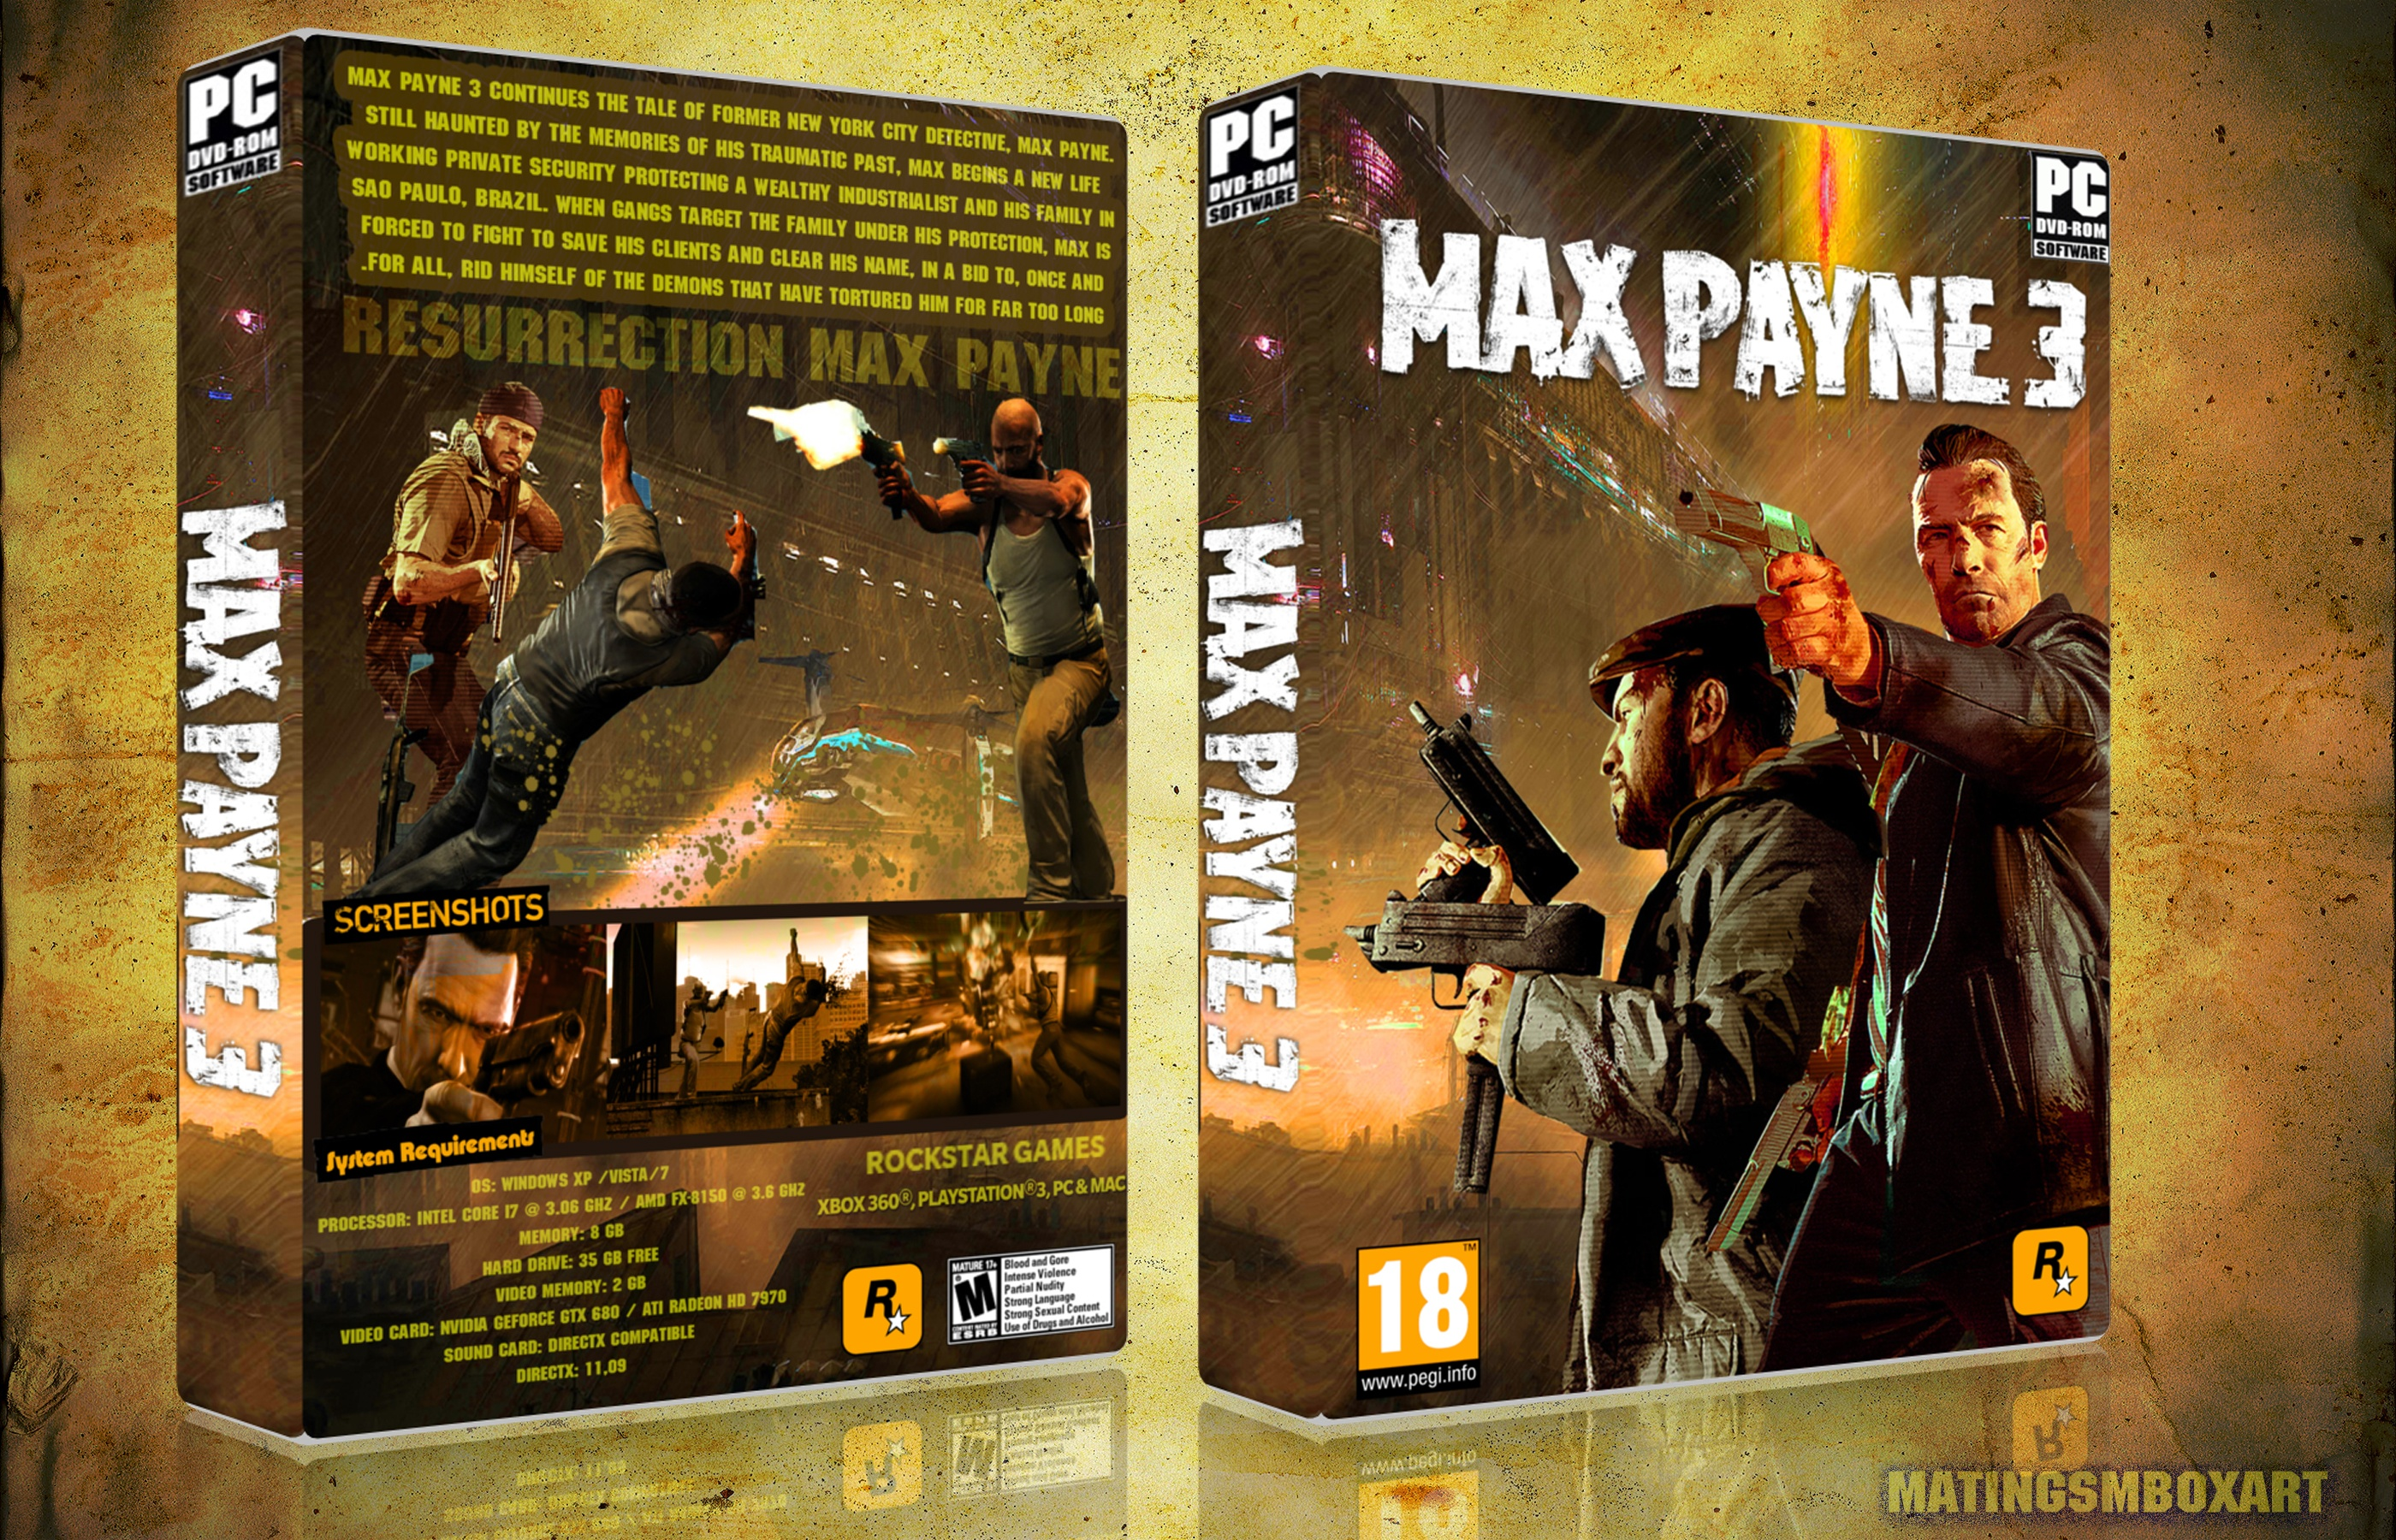 Max Payne 3 Pc Box Art Cover By Matingsm